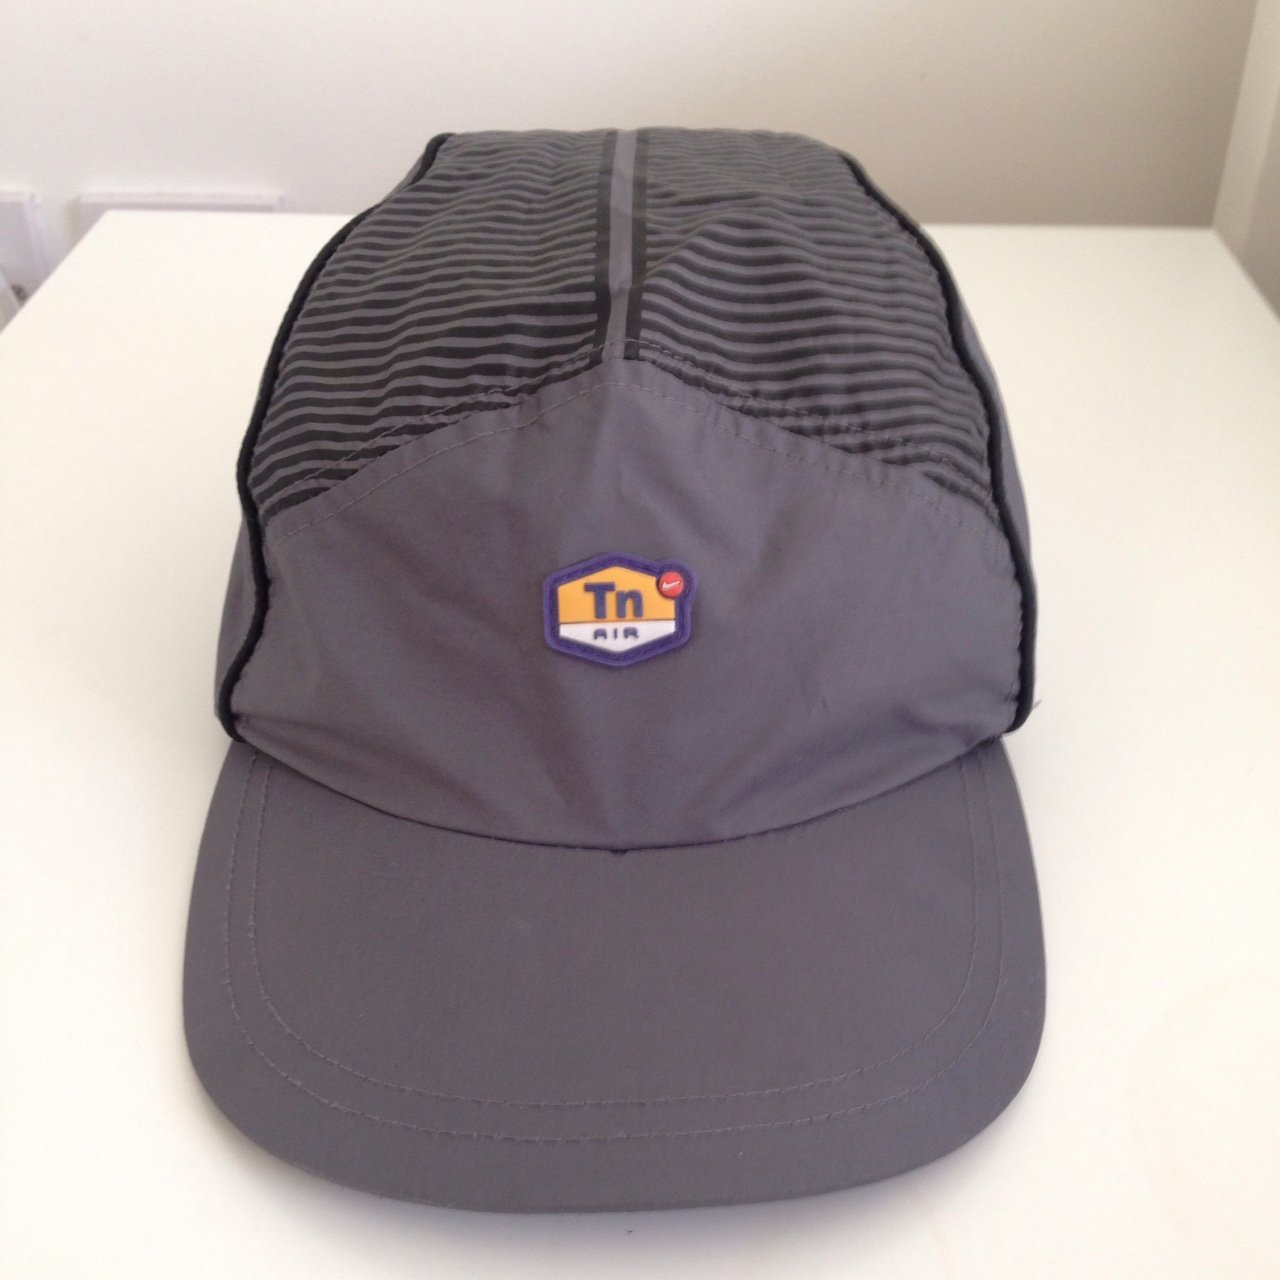 Nike clima-fit cap original TN hat from about 14 years ago - Depop 1650618c9bf